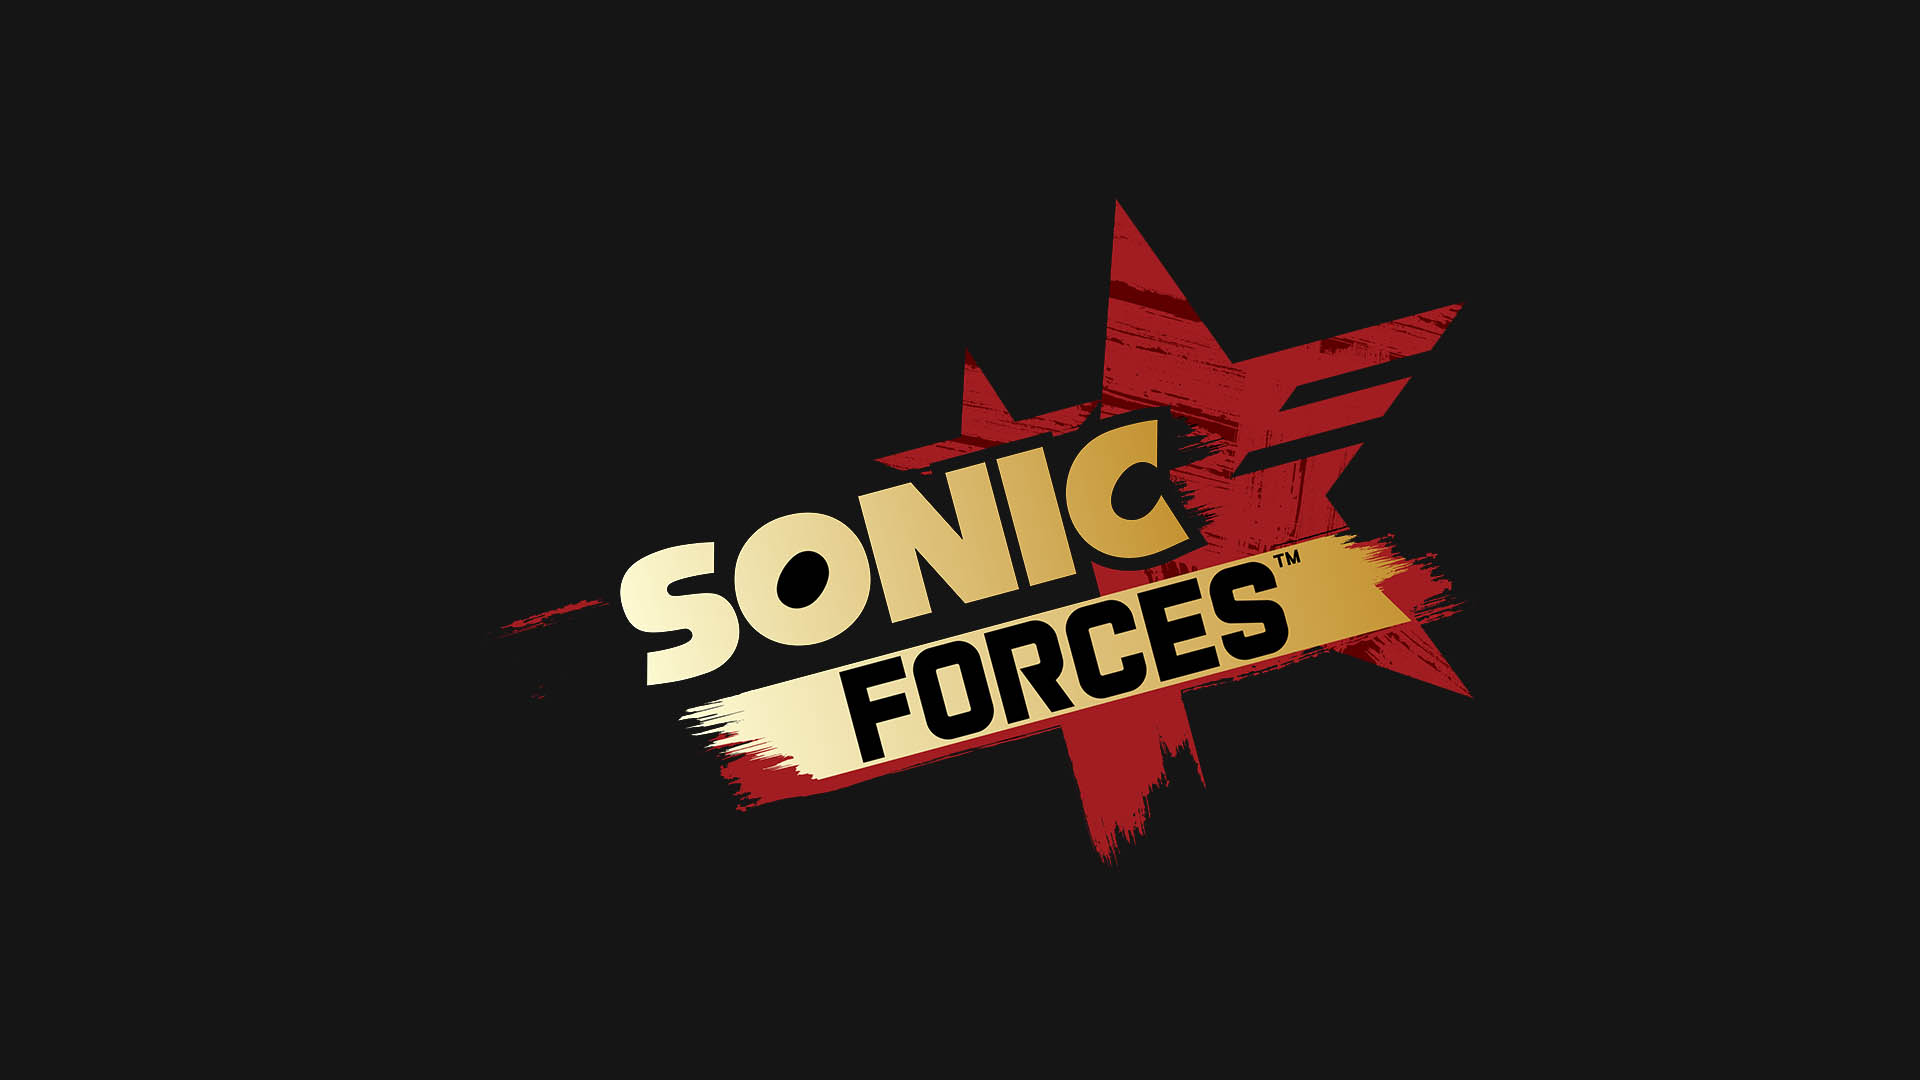 Sonic Forces: Aktuelles Video stellt Casino Forest Stage vor